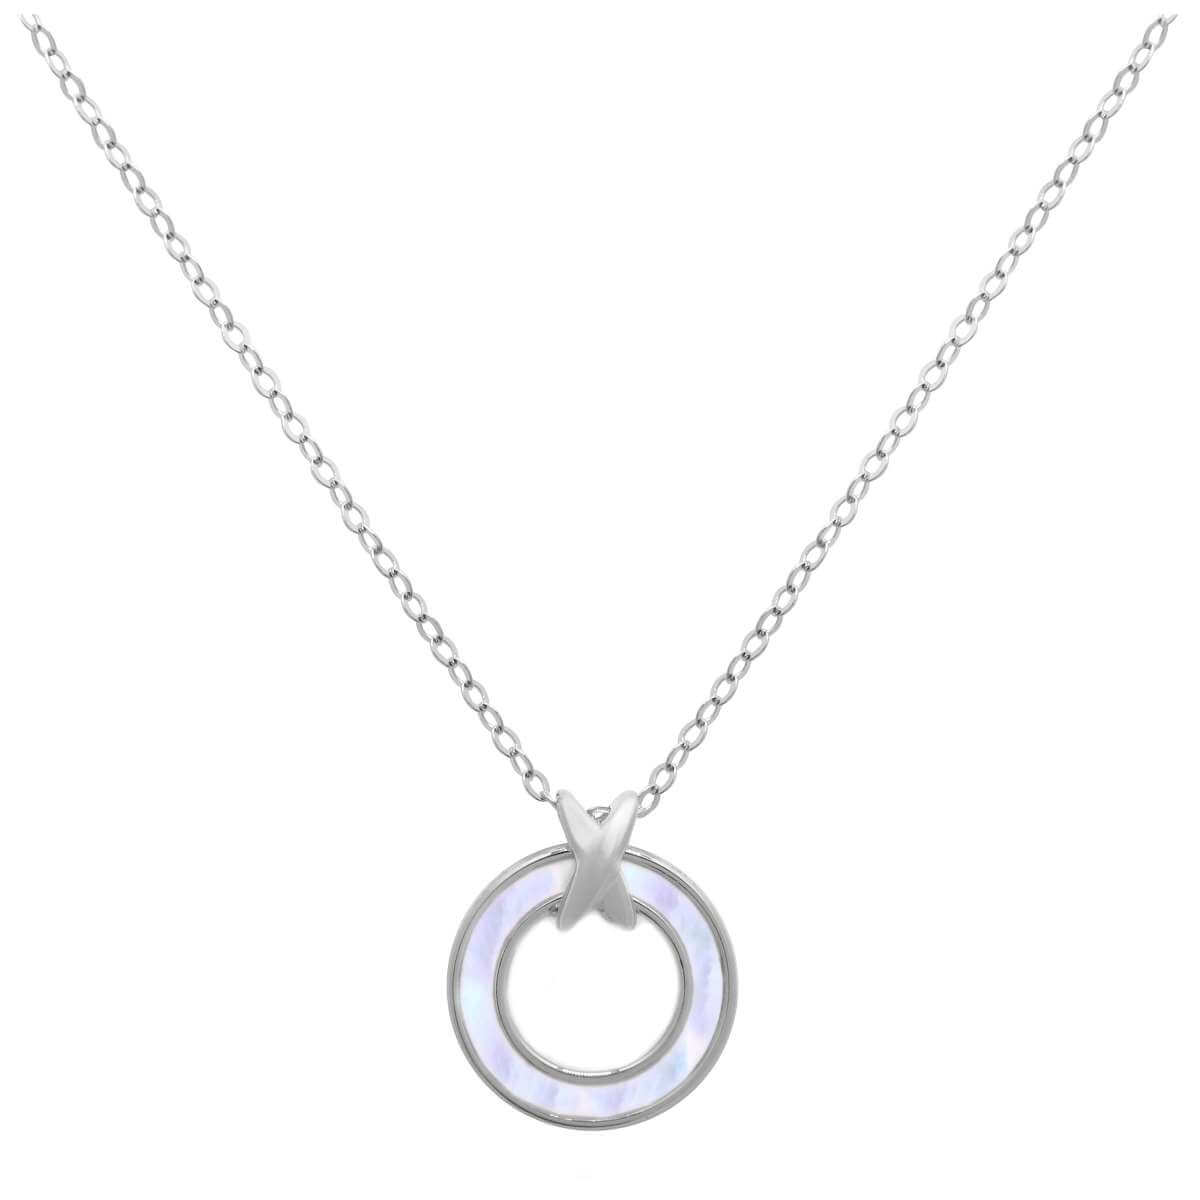 Sterling Silver Mother of Pearl Karma Circle Necklace 18 Inch